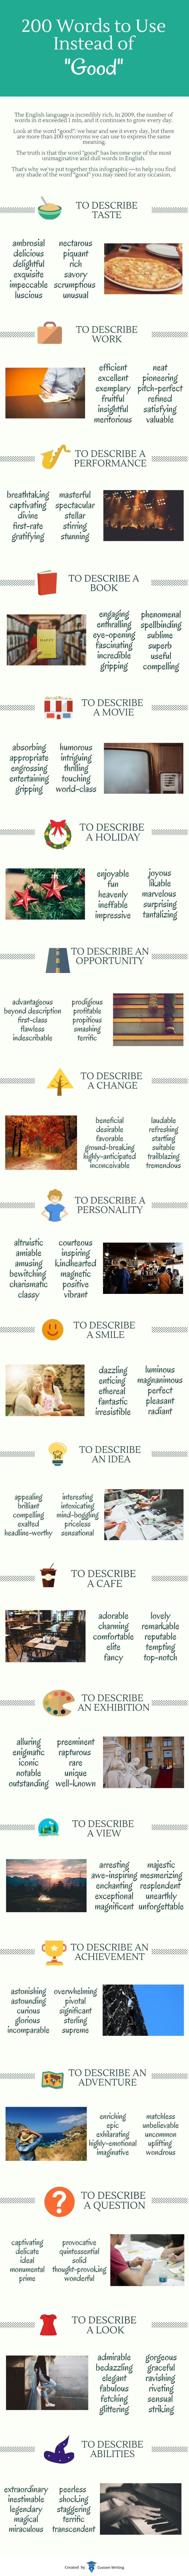 """200 Words to Use Instead of """"Good"""" Infographic - e-Learning"""